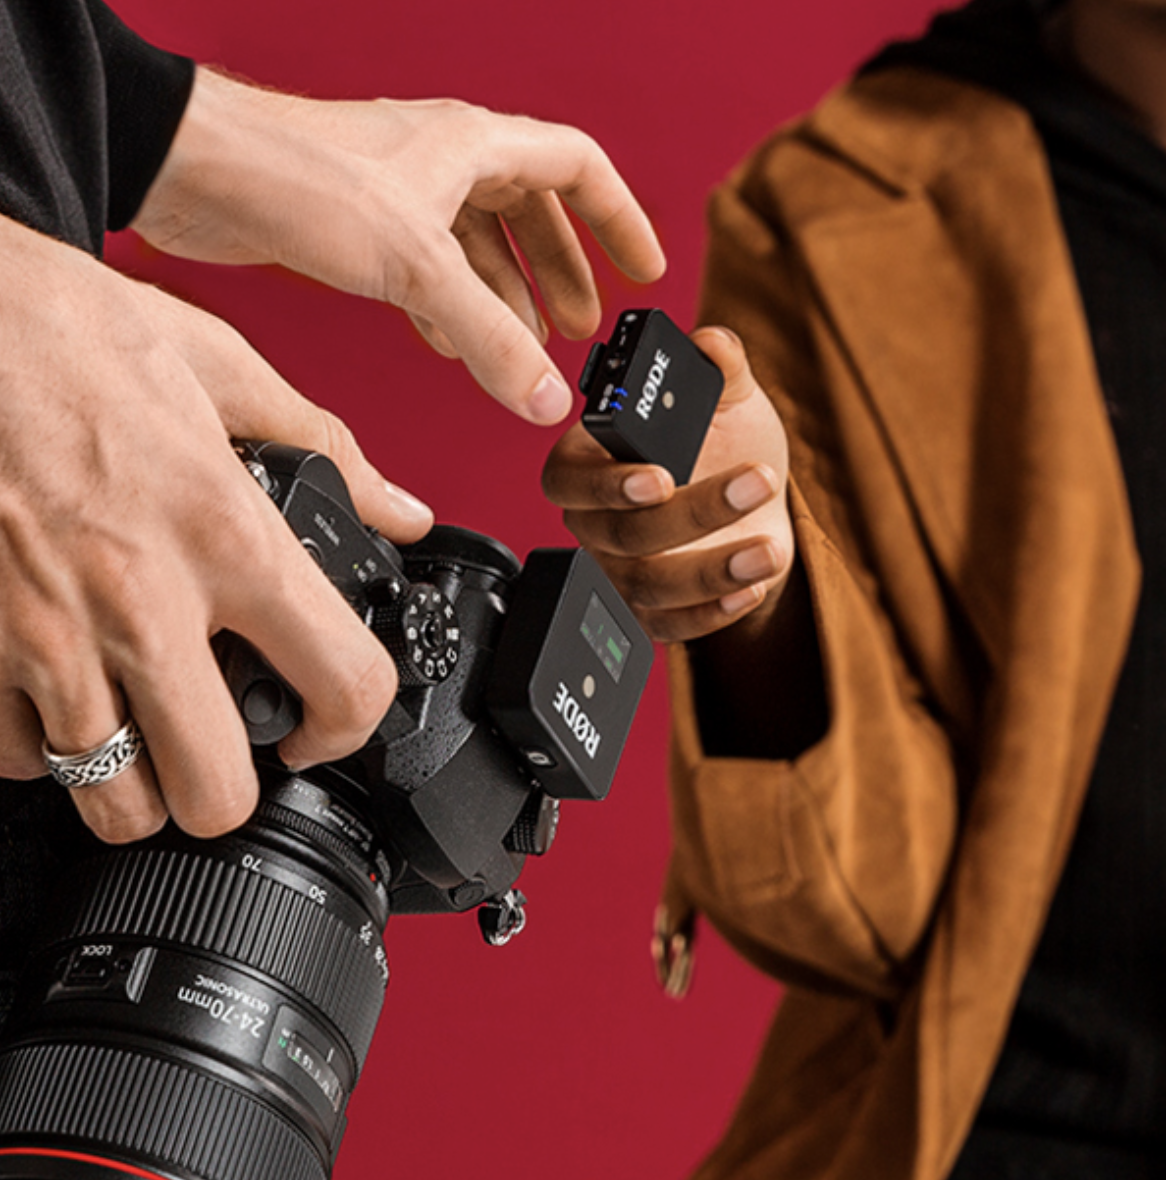 Wireless Microphones for Content Creation: What RØDE Mic Is Right for You?